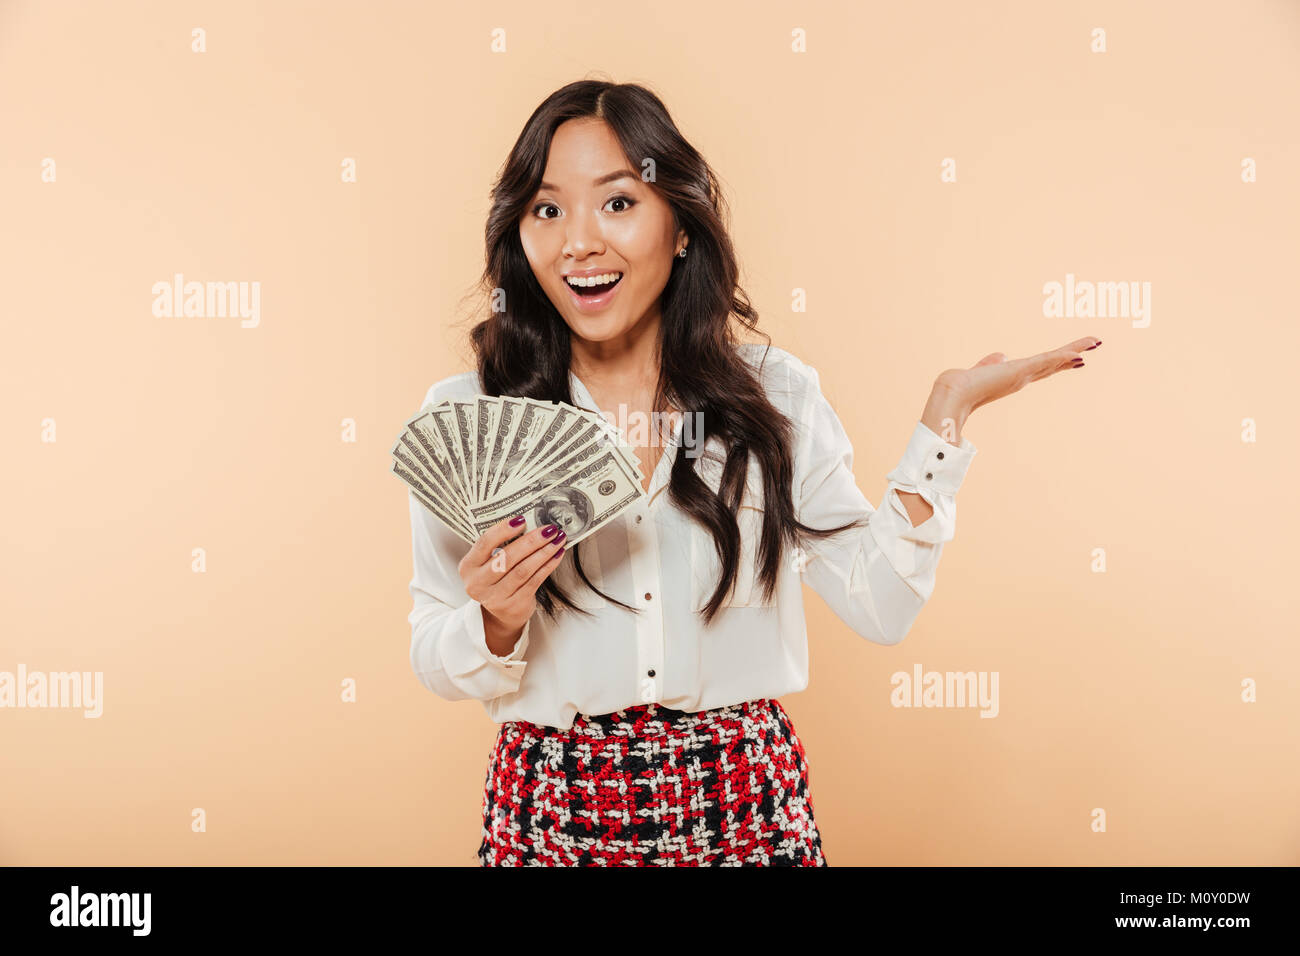 Excited young lady with long dark hair holding fan of 100 dollar bills expressing gladness, having a lot of money - Stock Image